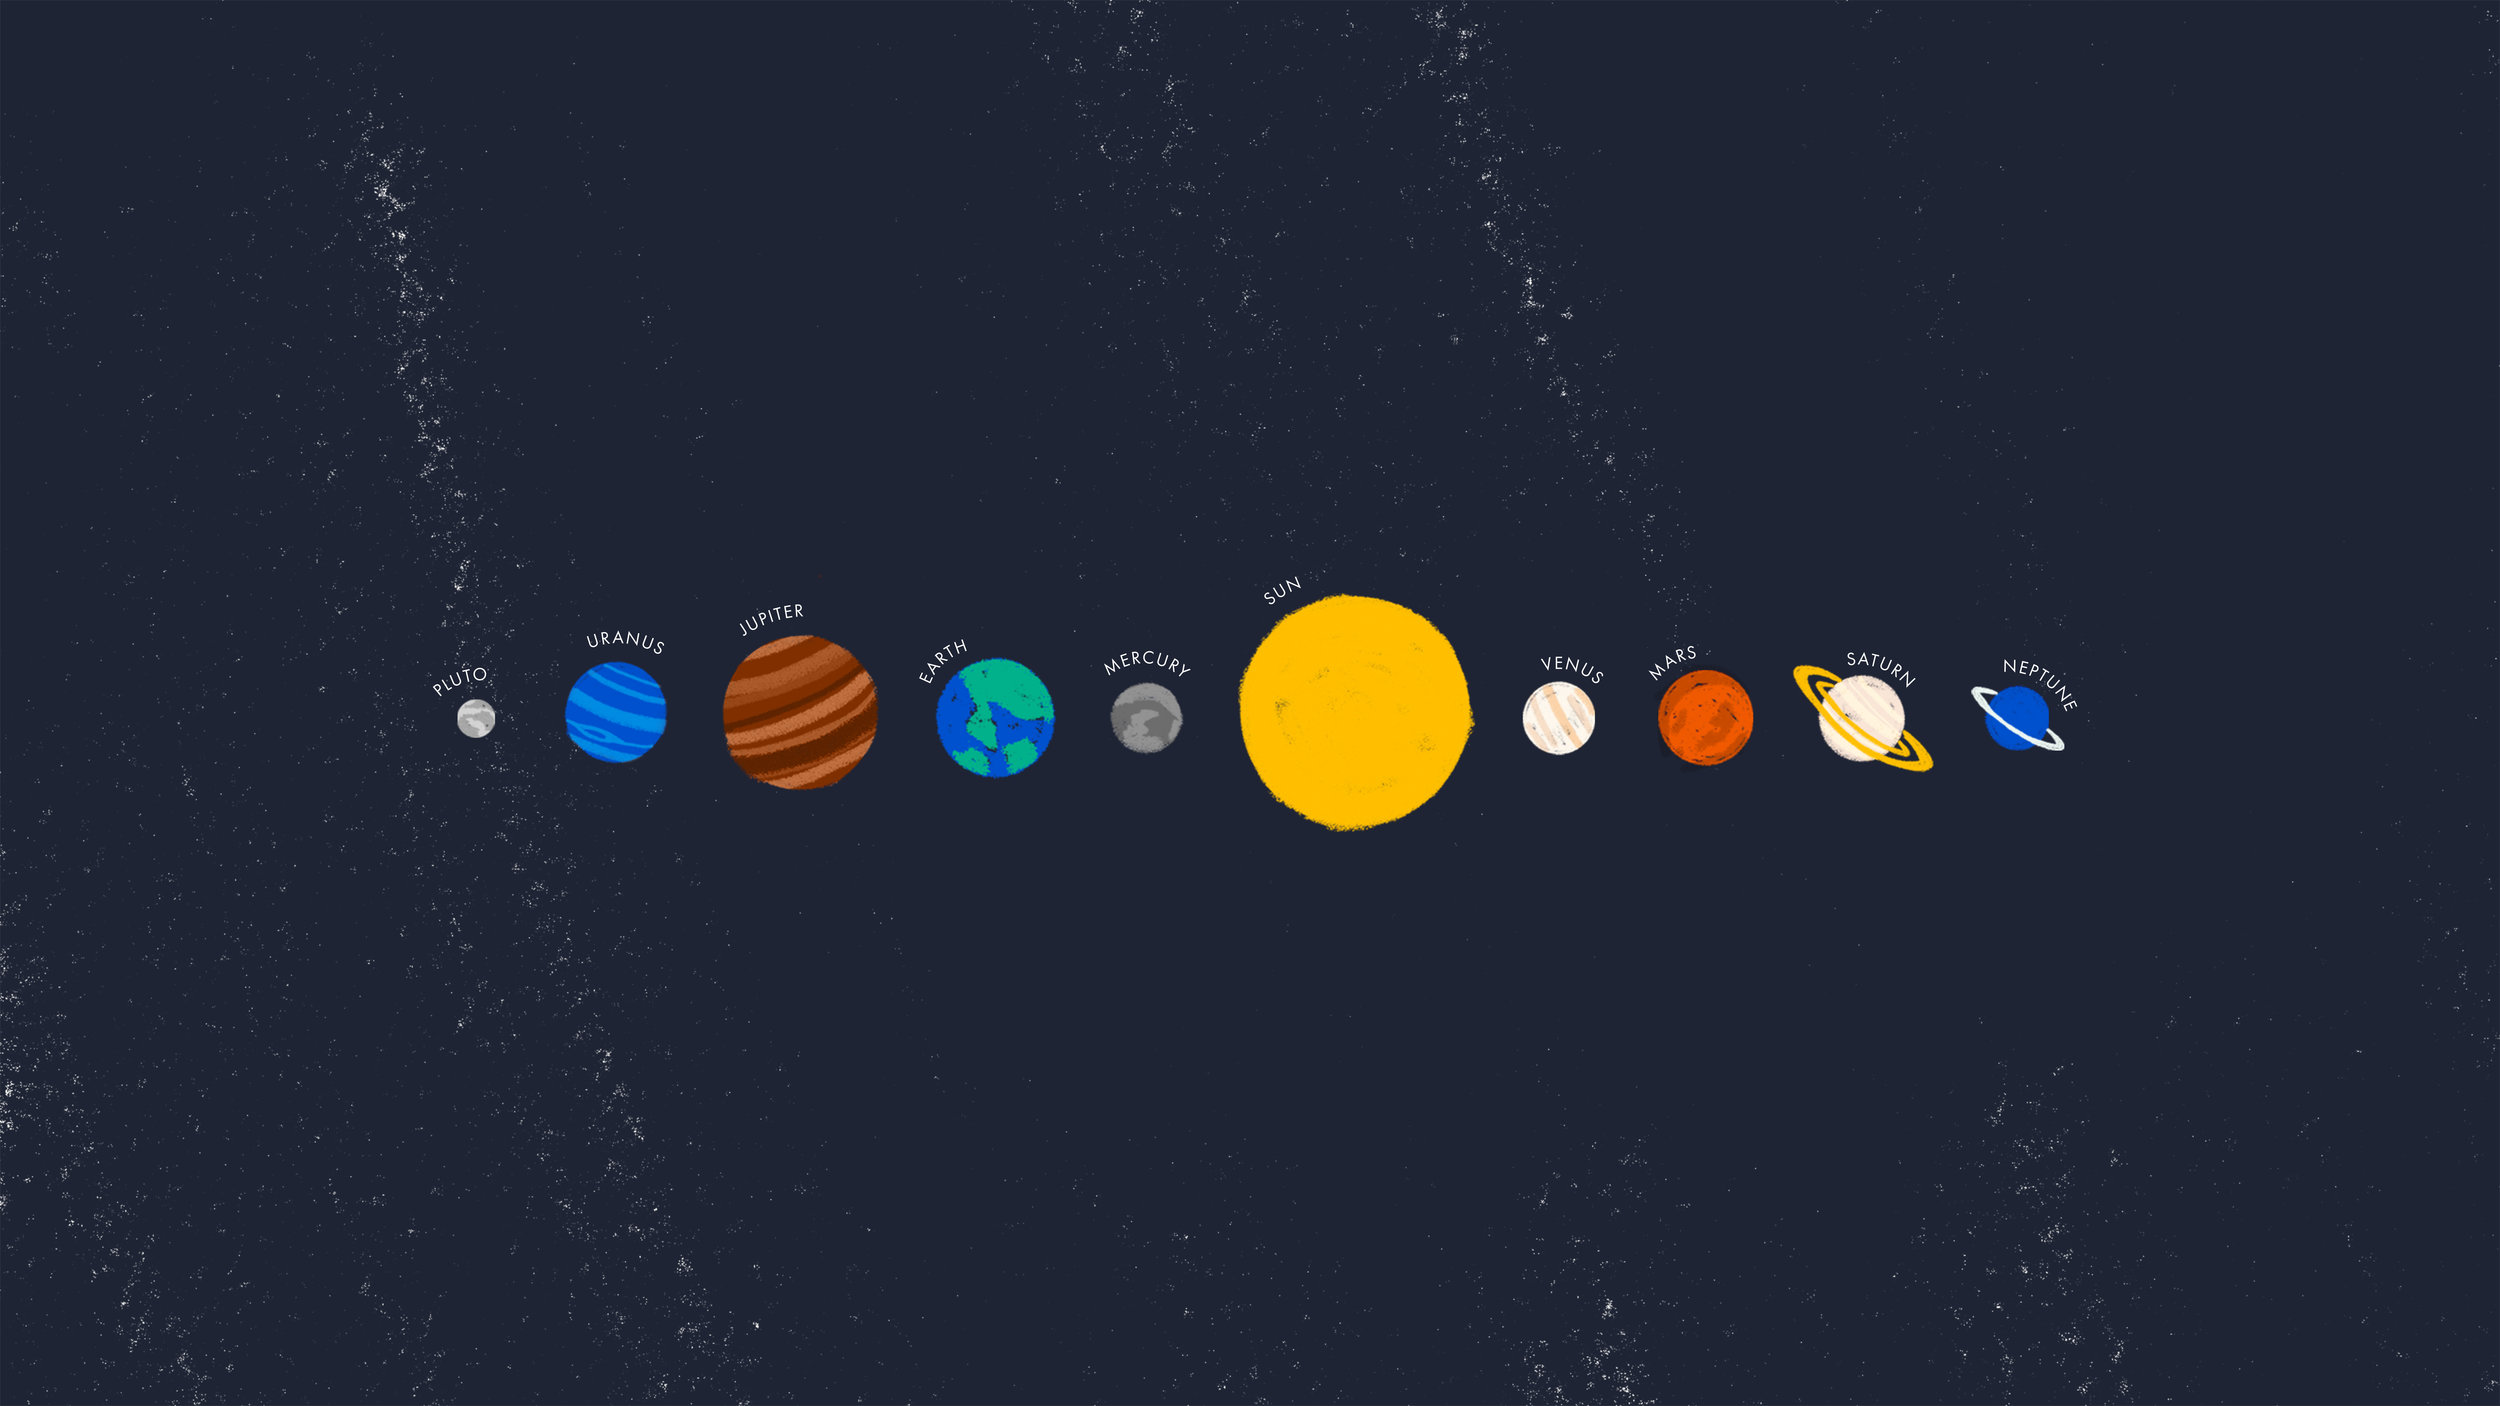 SF-Illustration-Planets.jpg